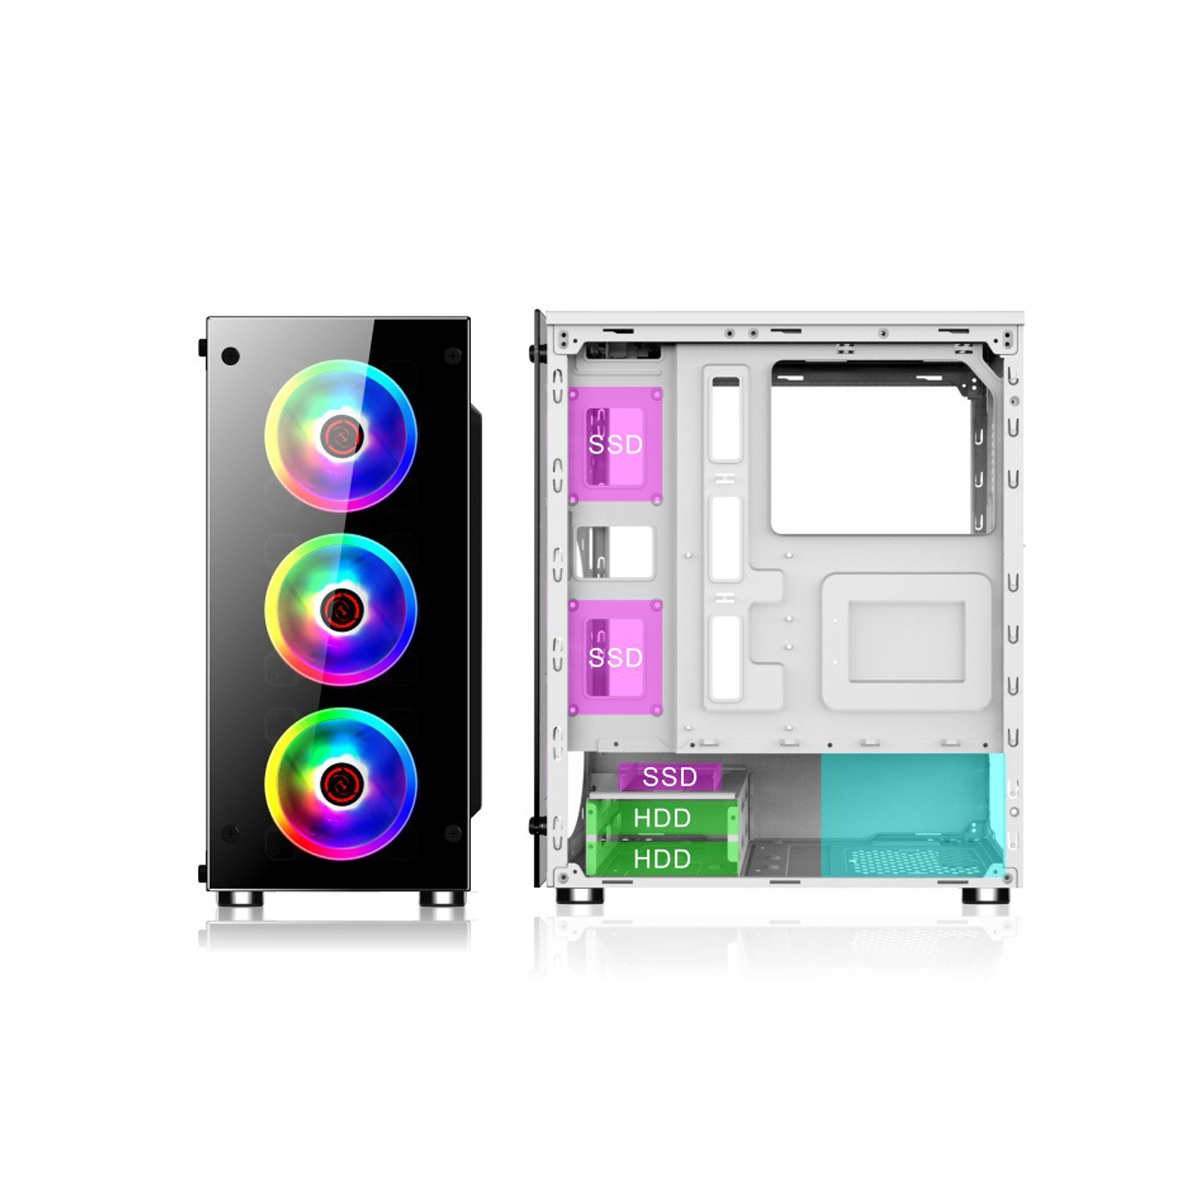 Coolmoon 397*197*423mm Transparent Side Panel ATX Desktop PC Computer Case